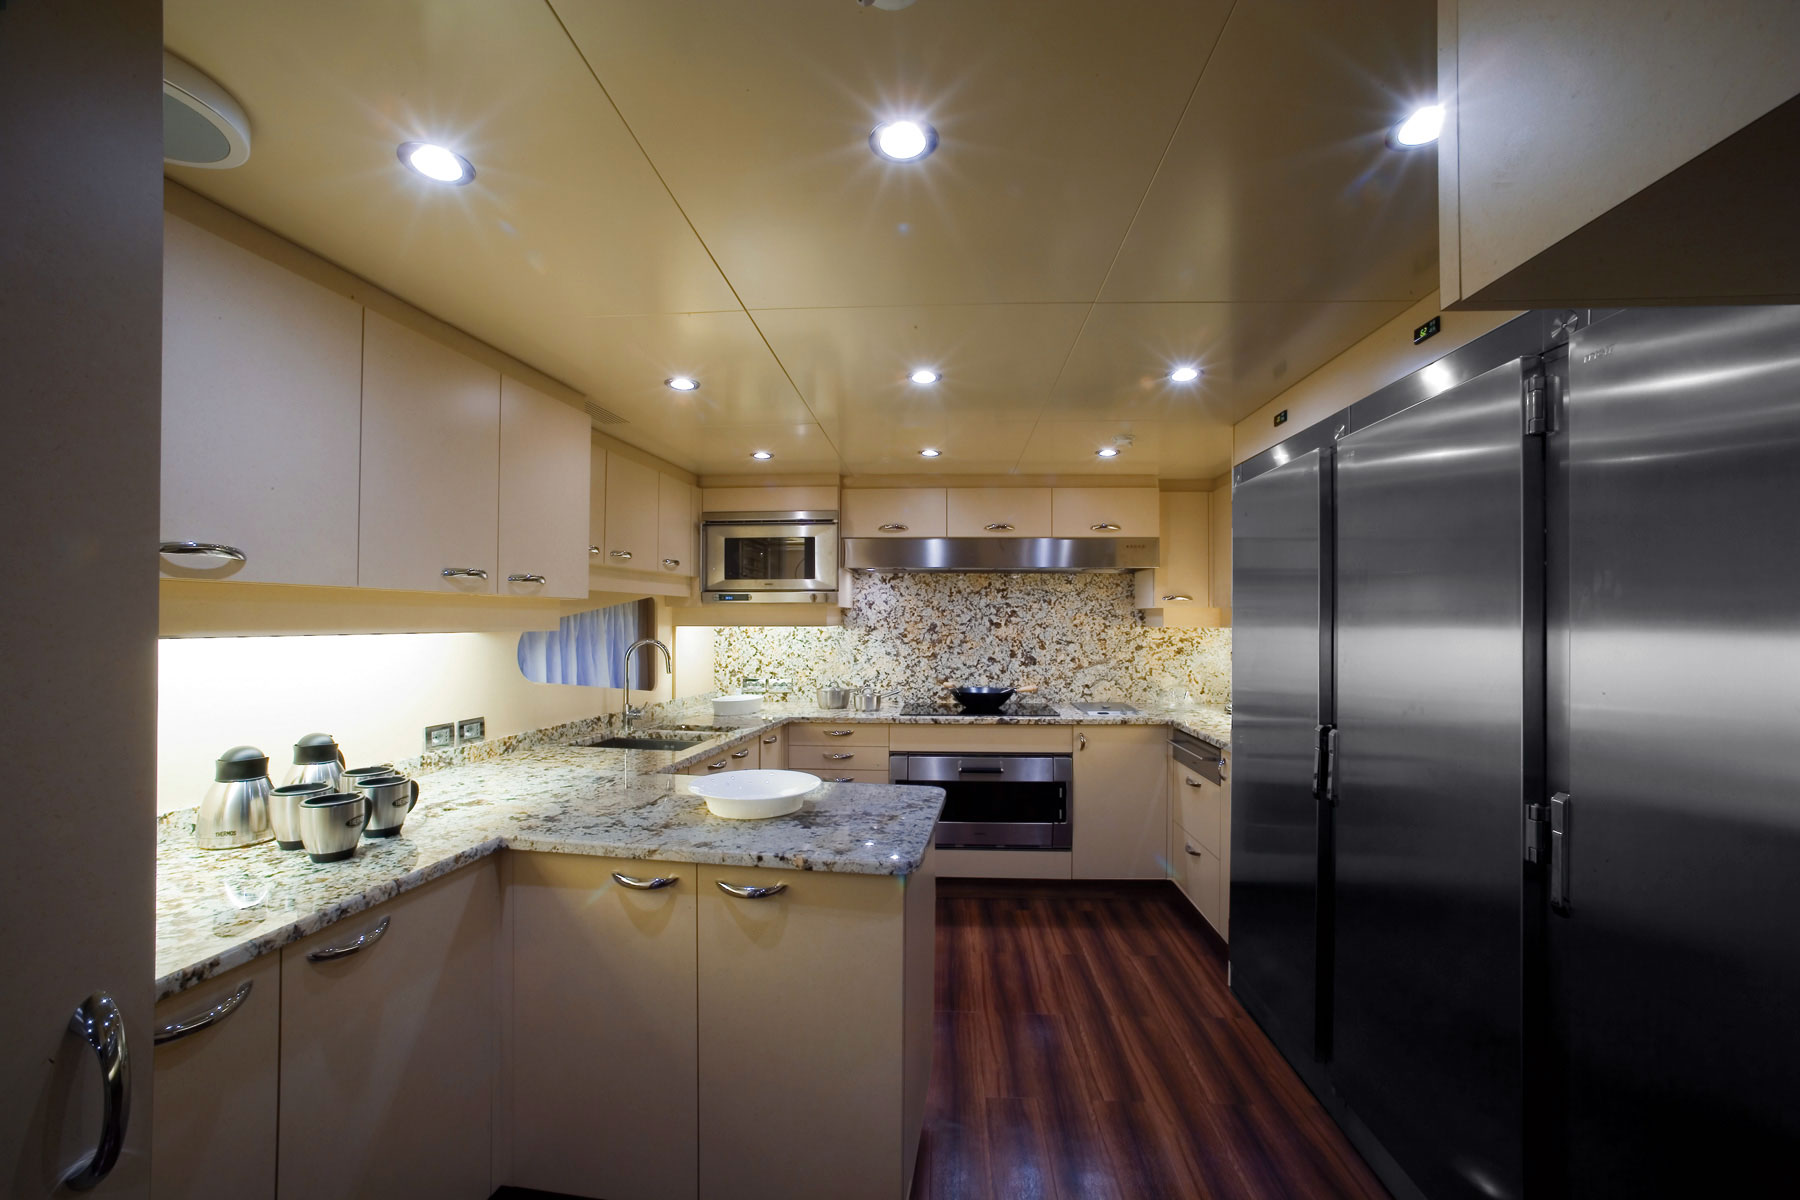 Luxury charter yacht princess iolanthe galley image courtesy of mondo marine yacht charter Ship galley kitchen design